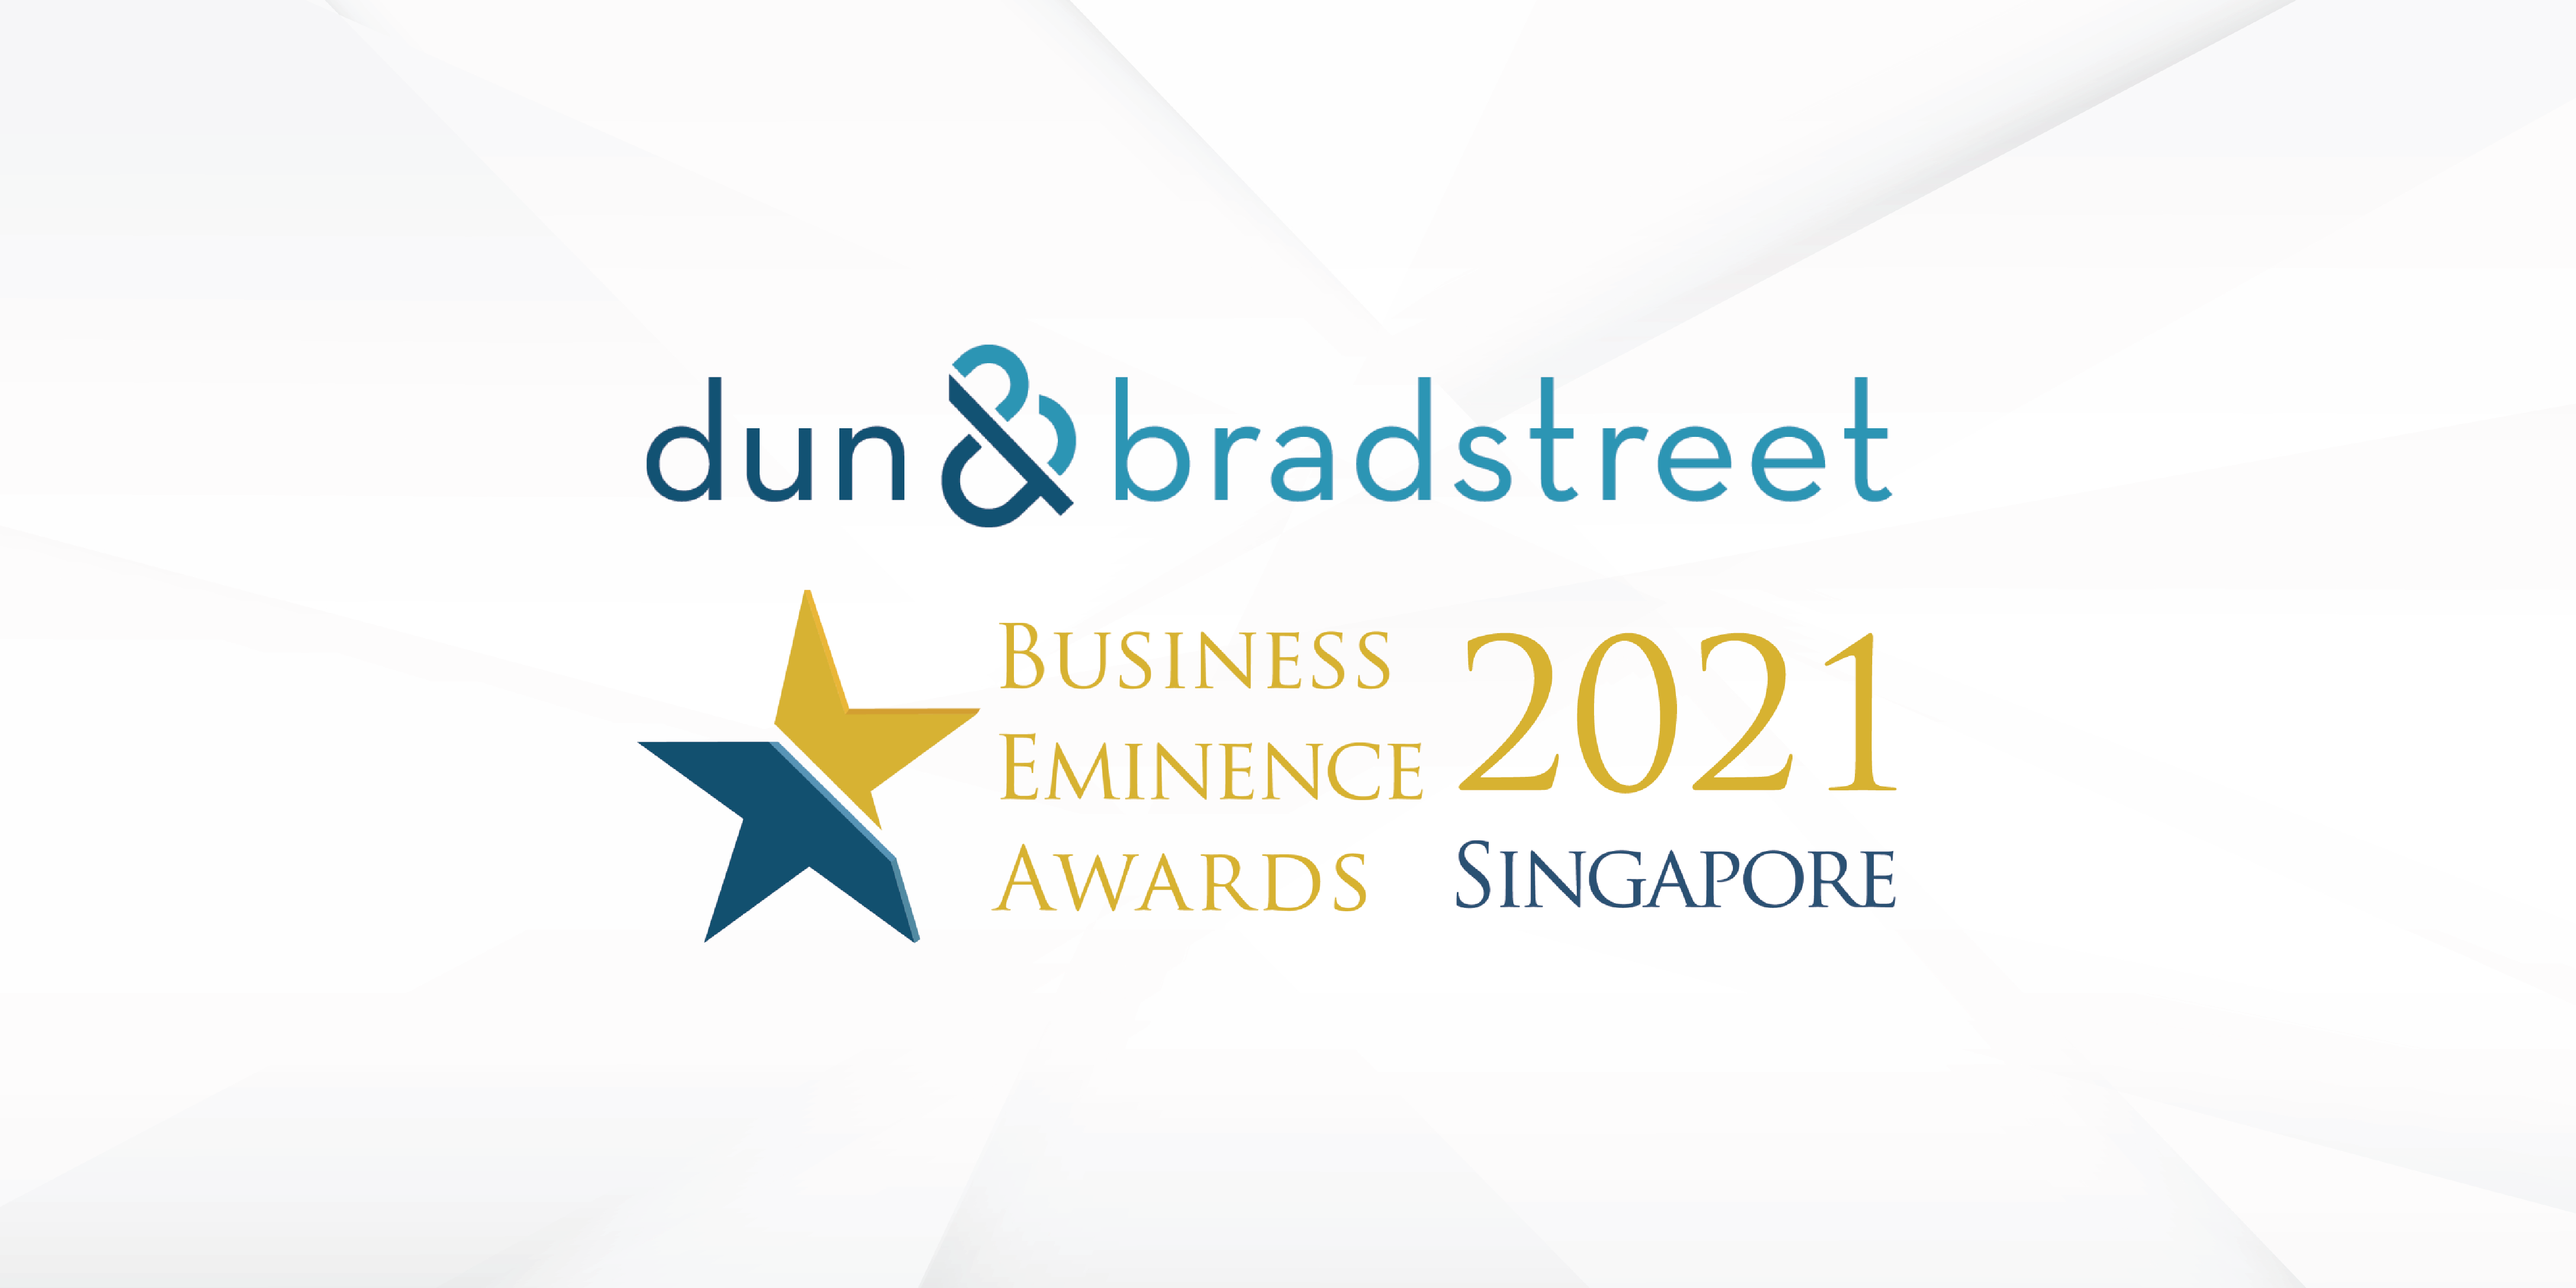 Tricor Group Recognized by Dun & Bradstreet with 2021 Business Eminence Award for Singapore Operations